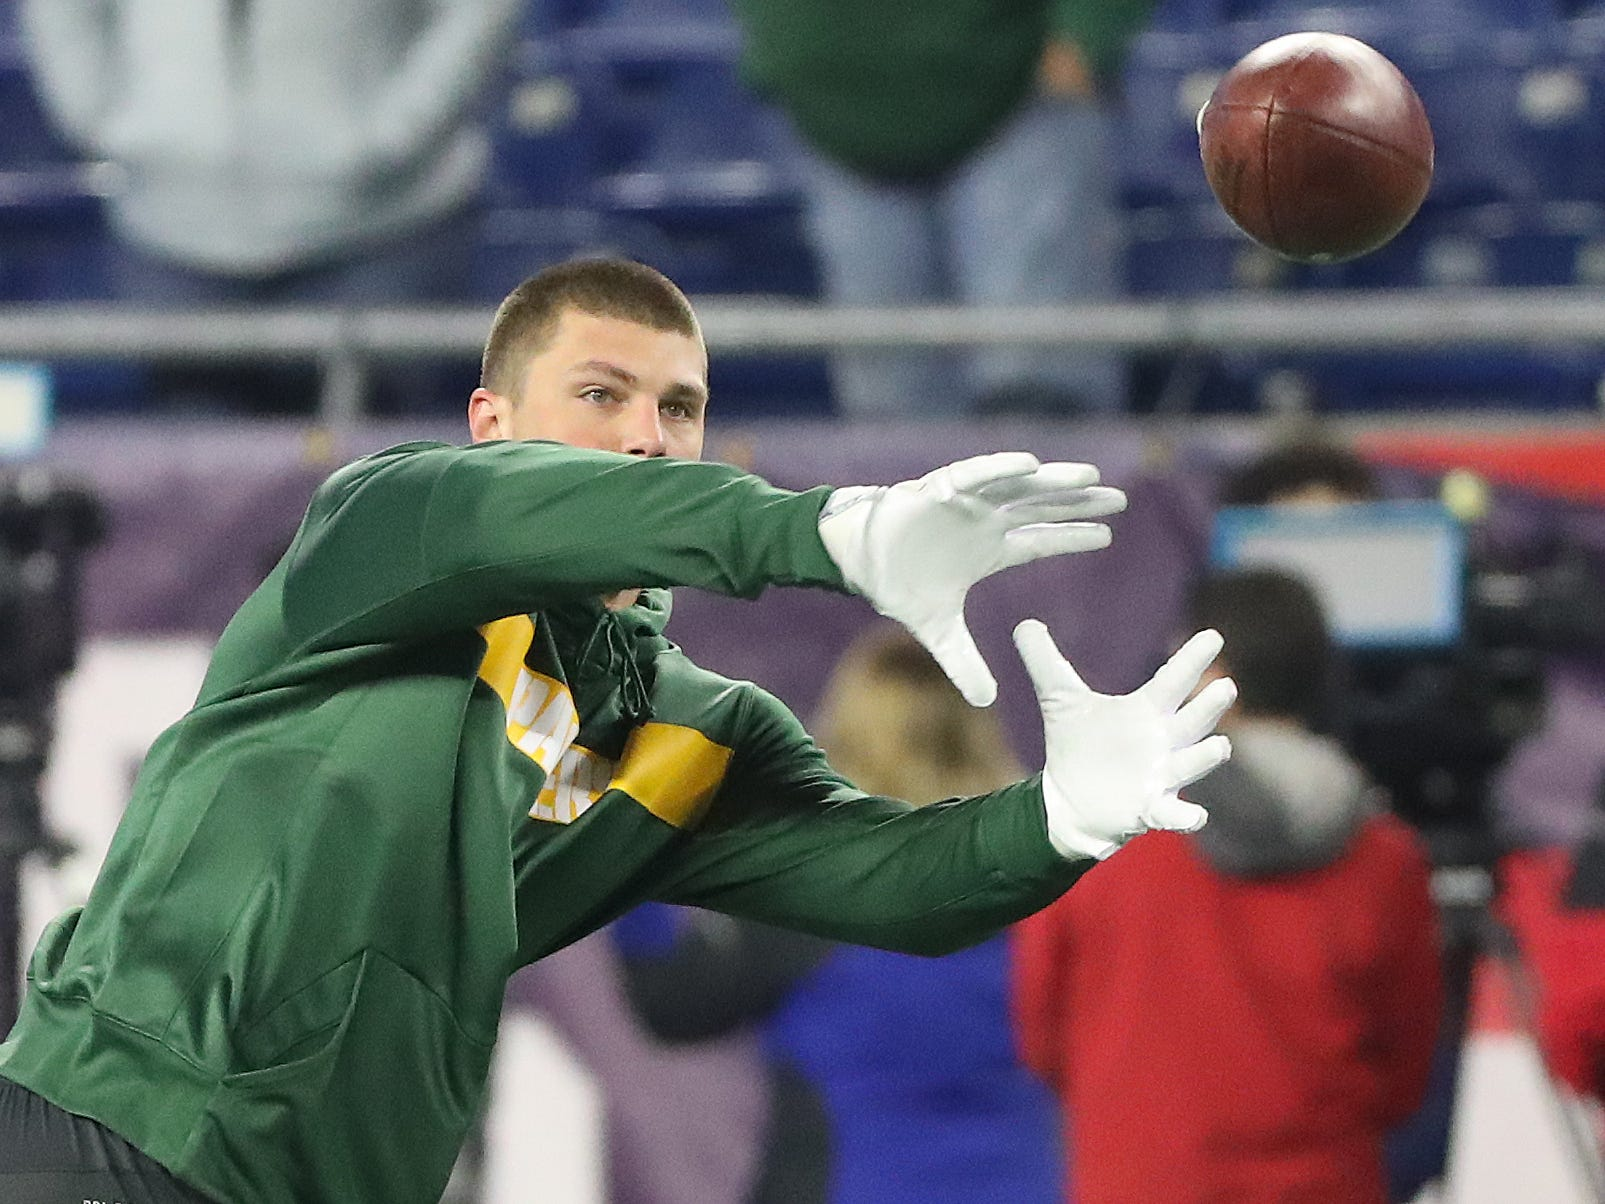 Green Bay Packers tight end Robert Tonyan (85) warms top before the game against the New England Patriots Sunday, November 4, 2018 at Gillette Stadium in Foxborough, Mass.